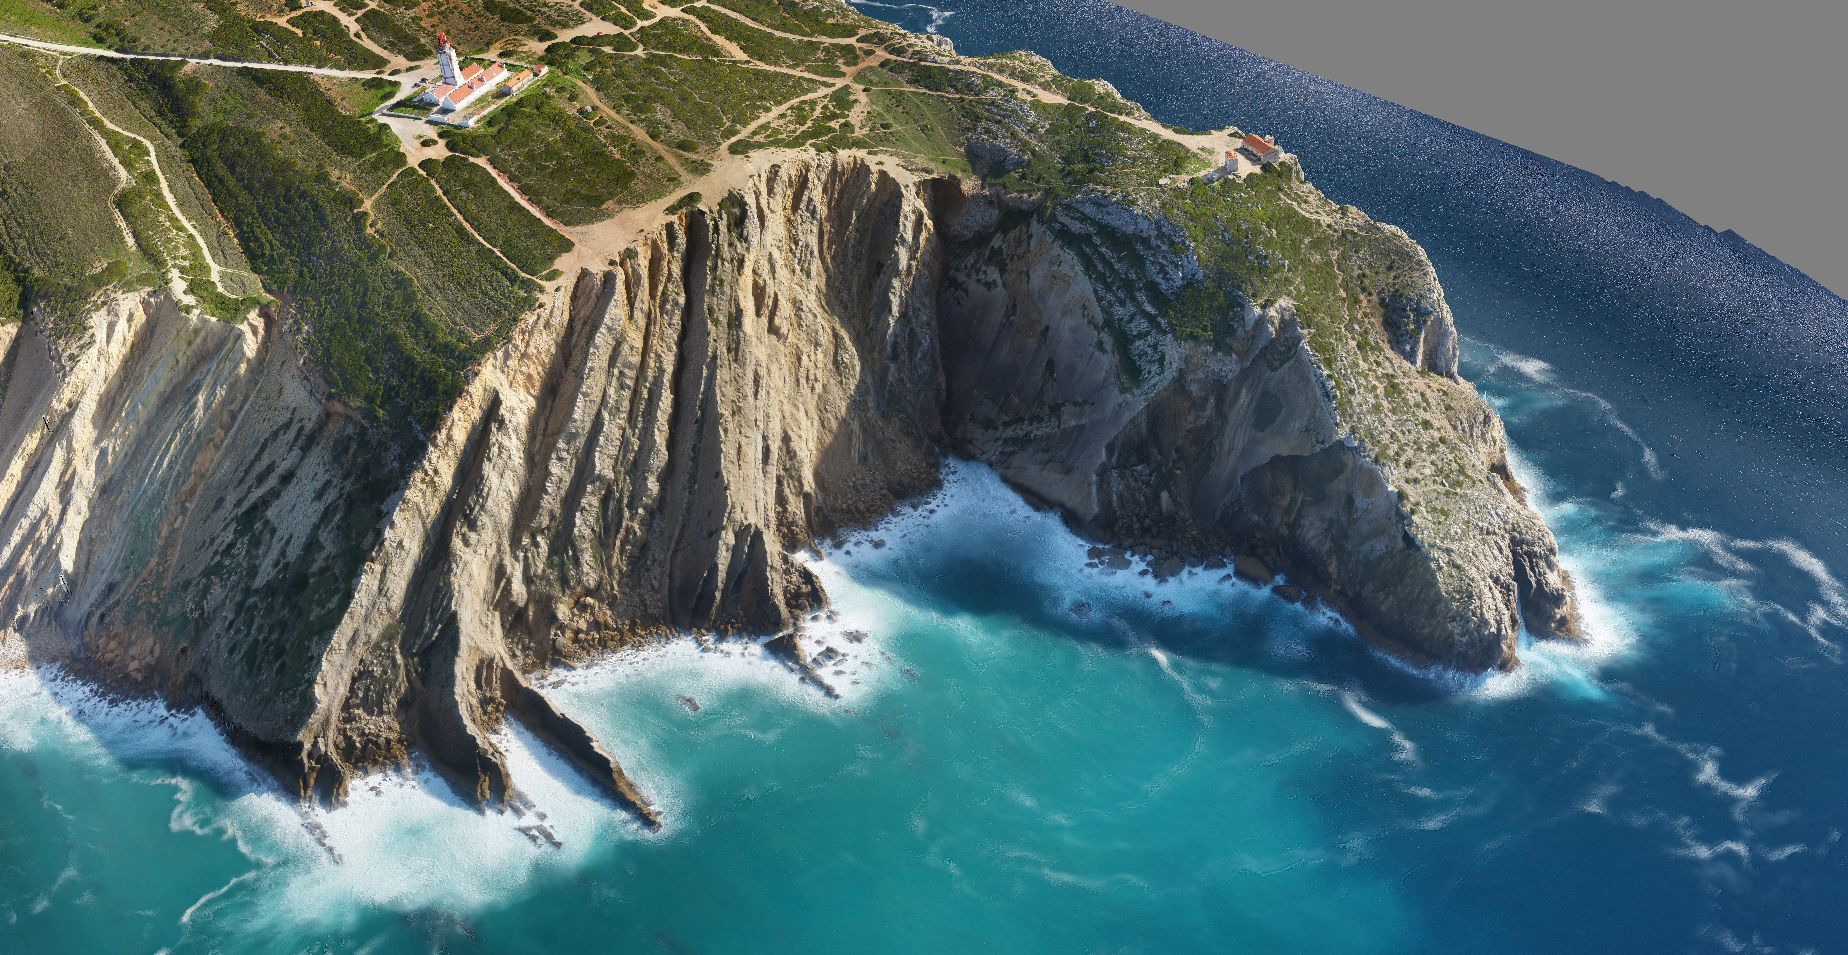 drone videos with Levantamento Aereo Do Cabo Espichel on Afficher image 495 9897 7734bfe7d5 besides Xmasdronerun in addition Uia 20mondrone as well 460 in addition Stock Photo 1600 Ryan Xv 5 Vertifan Cut Away 71212559.